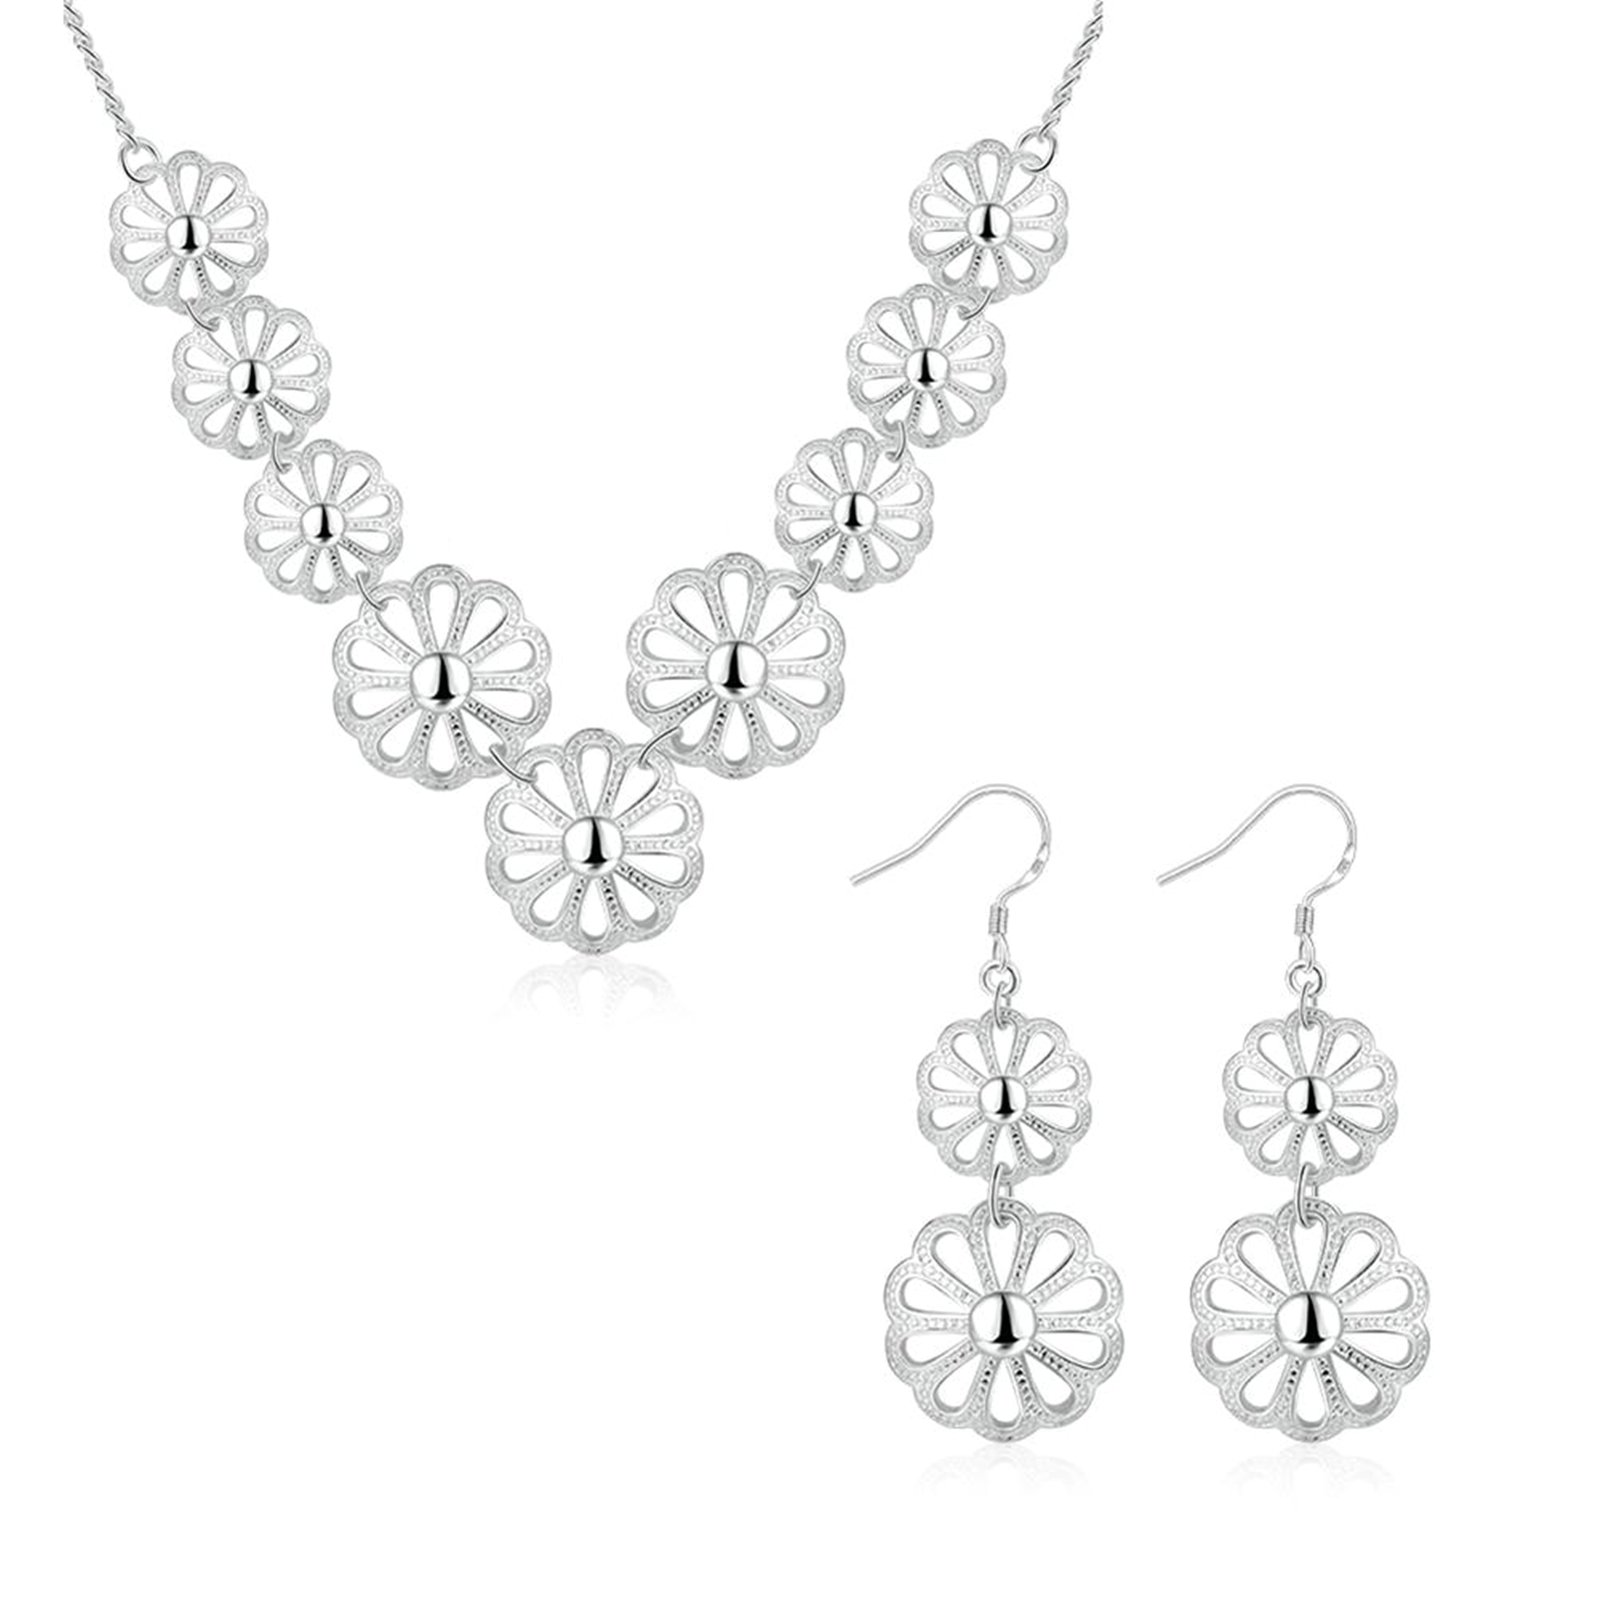 Gnzoe Fashion Jewelry Silver Plated Womens Necklace and Earring Set Hollow Flower Jewelry Set